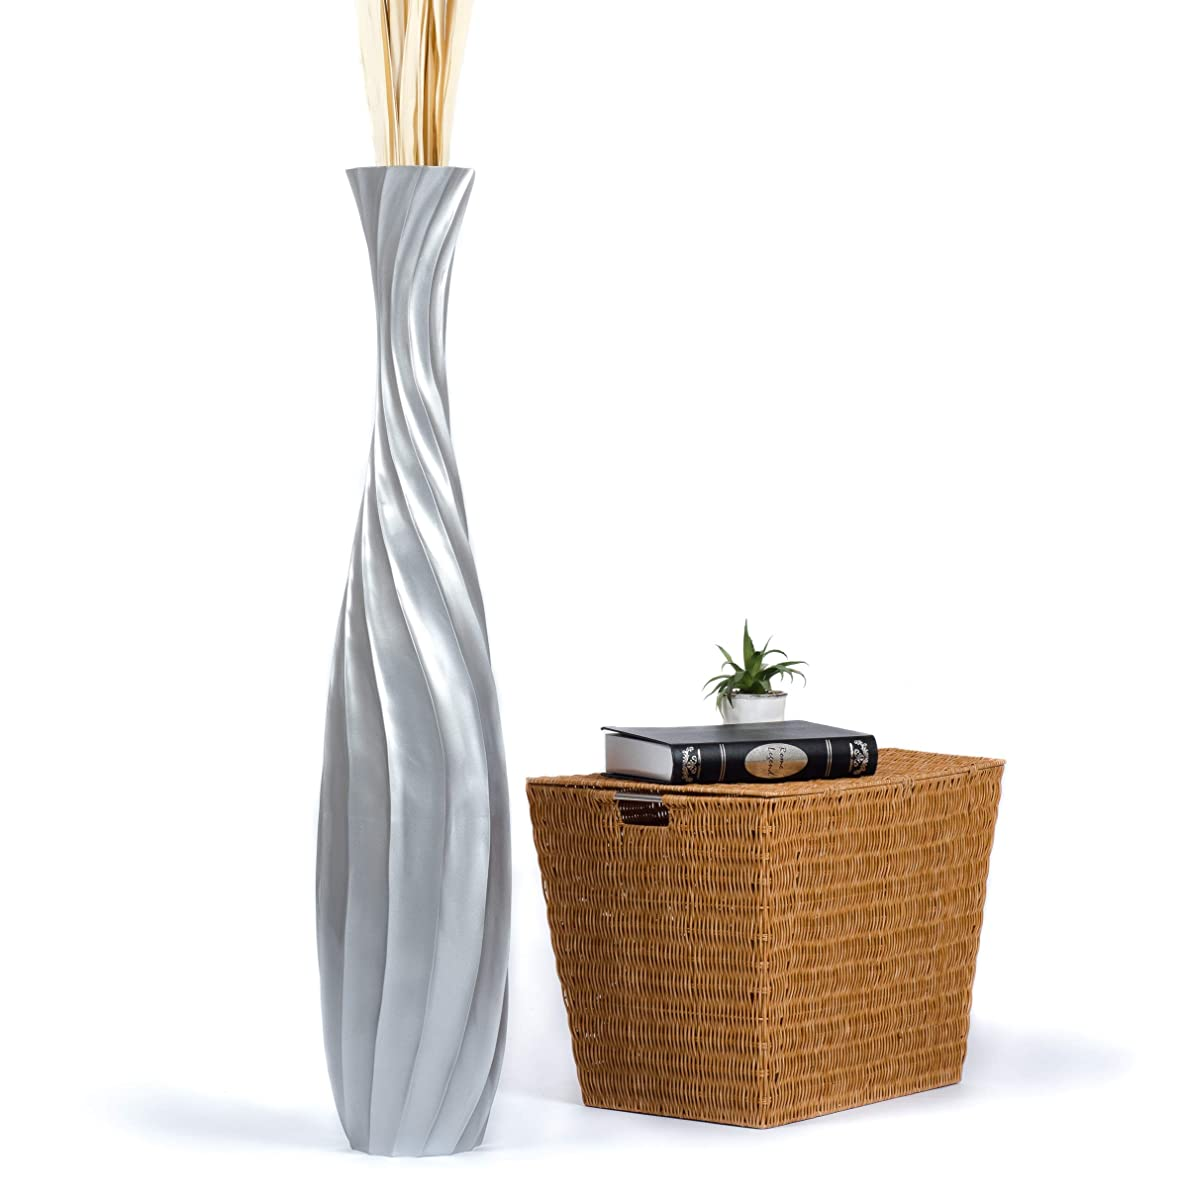 Leewadee Tall Big Floor Standing Vase for Home Decor, 9x44 inches, Wood, Silver